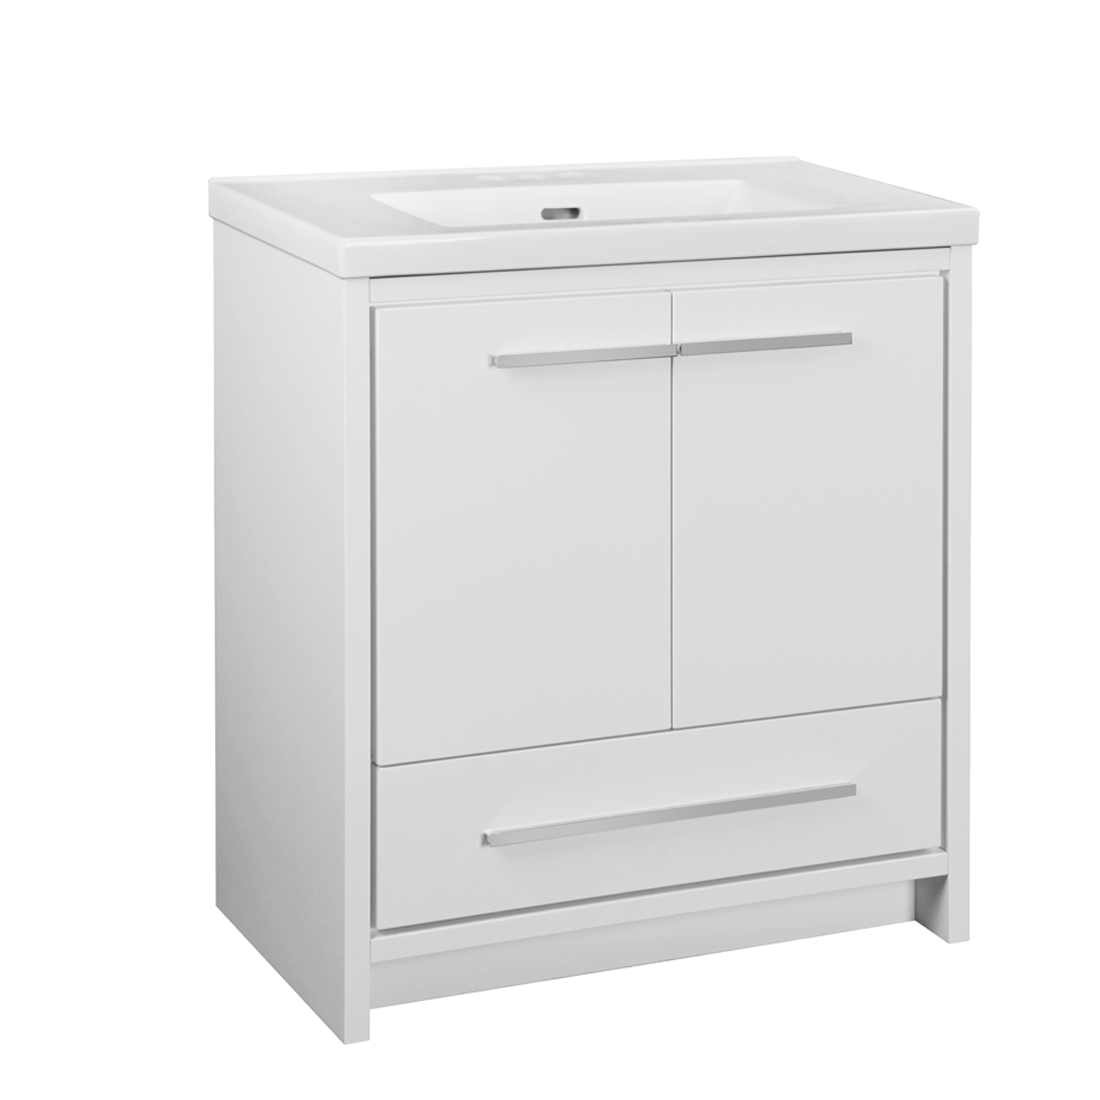 Romali 2.0 30inch-White Vanity front view